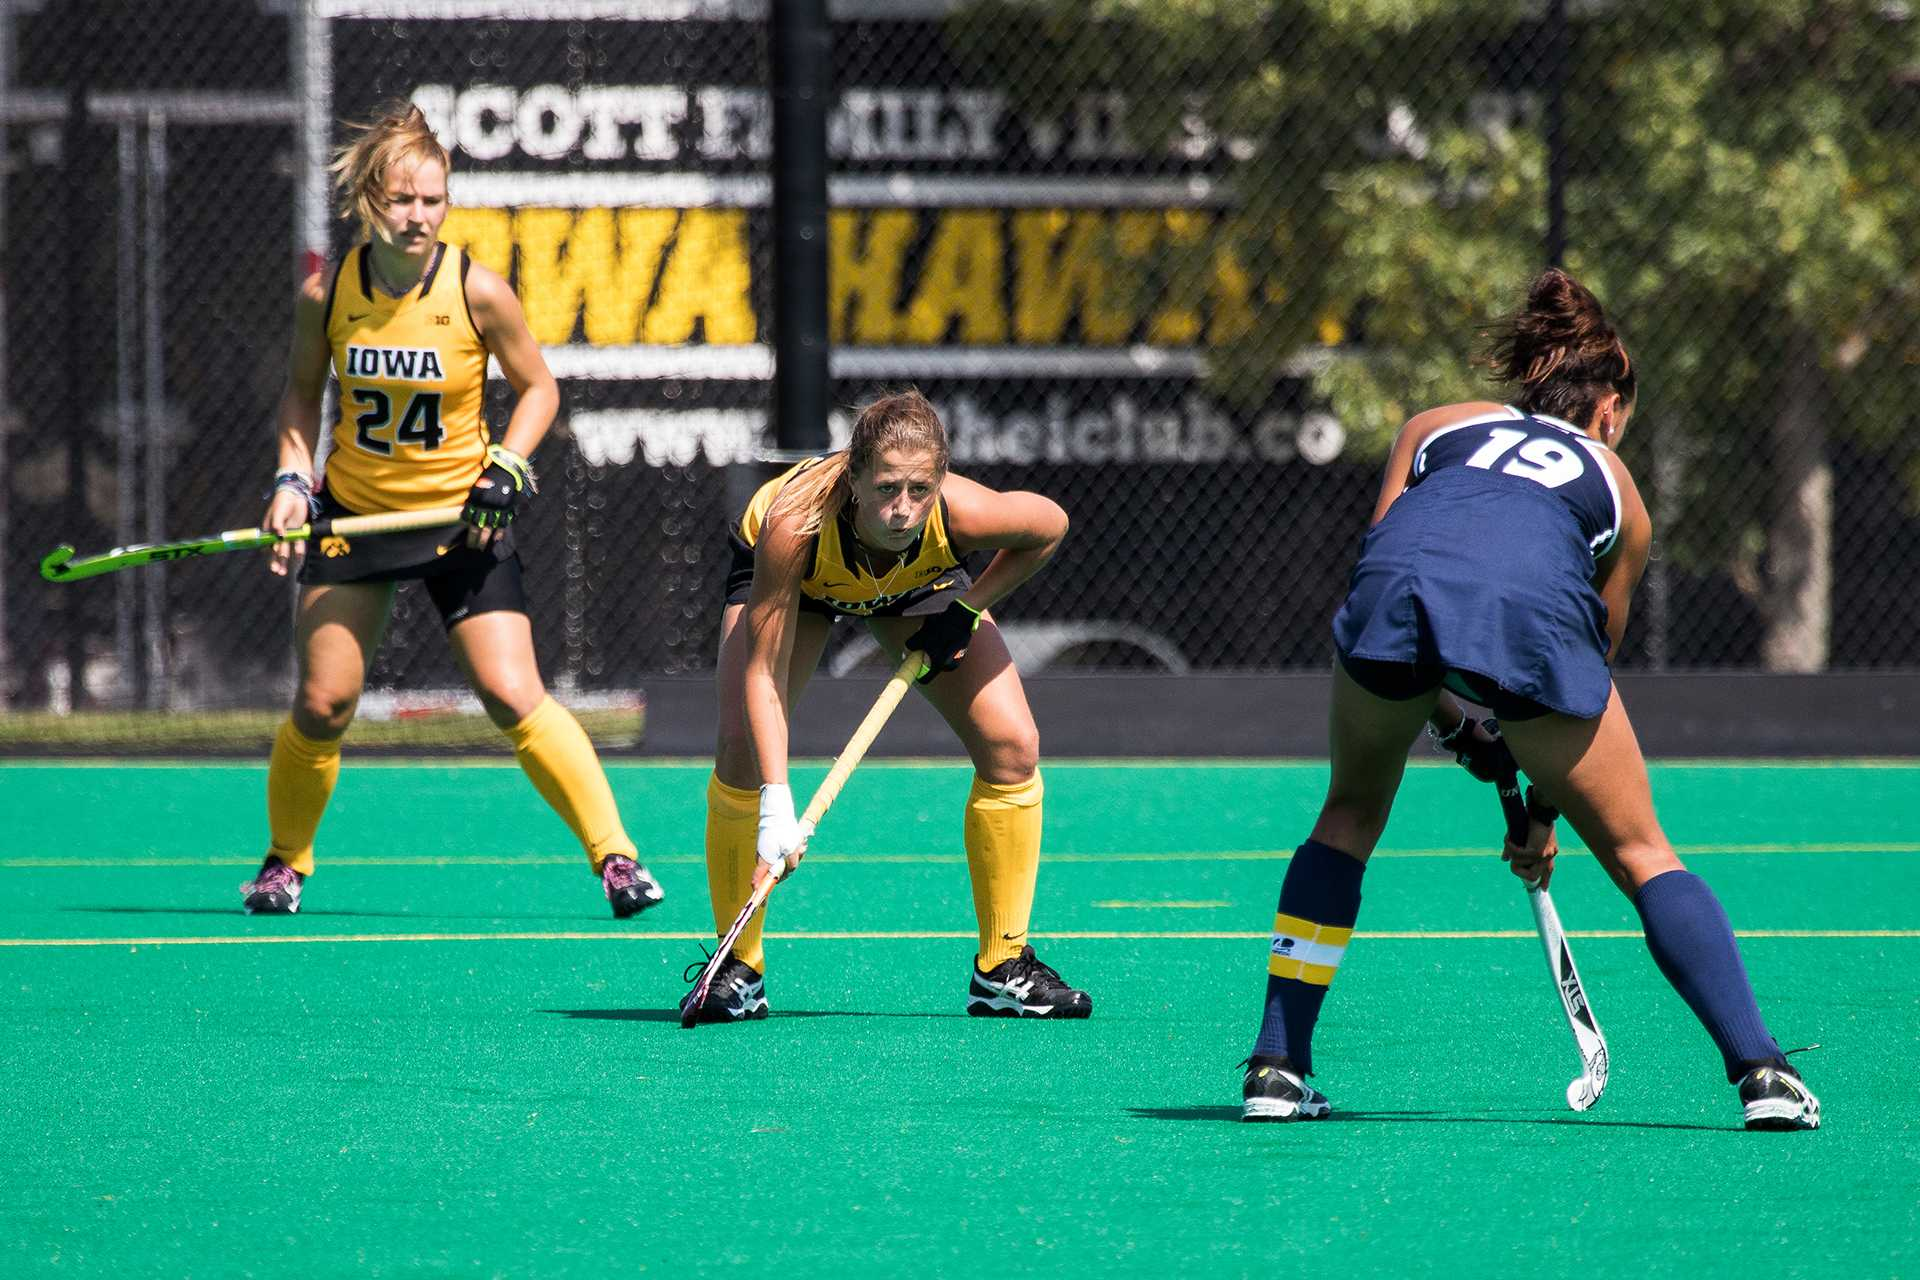 Iowa field hockey players face off against the University of New Hampshire on Sunday, 10 September, 2017. Iowa defeated UNH by a final score of 7-1. (David Harmantas/The Daily Iowan)